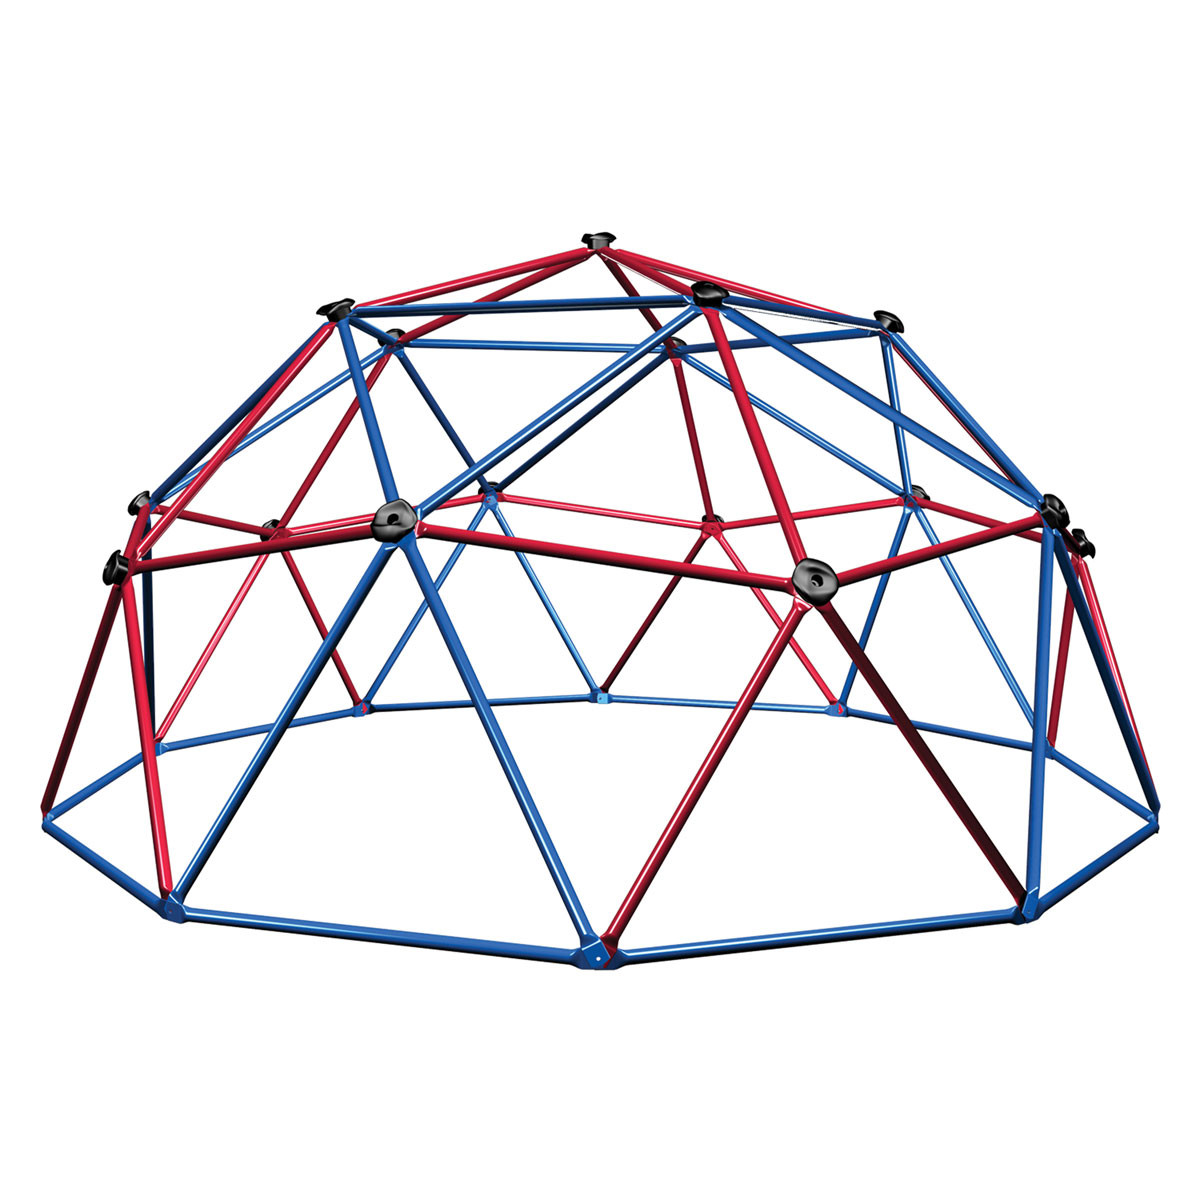 Lifetime Geo Dome Climber - Primary Colors